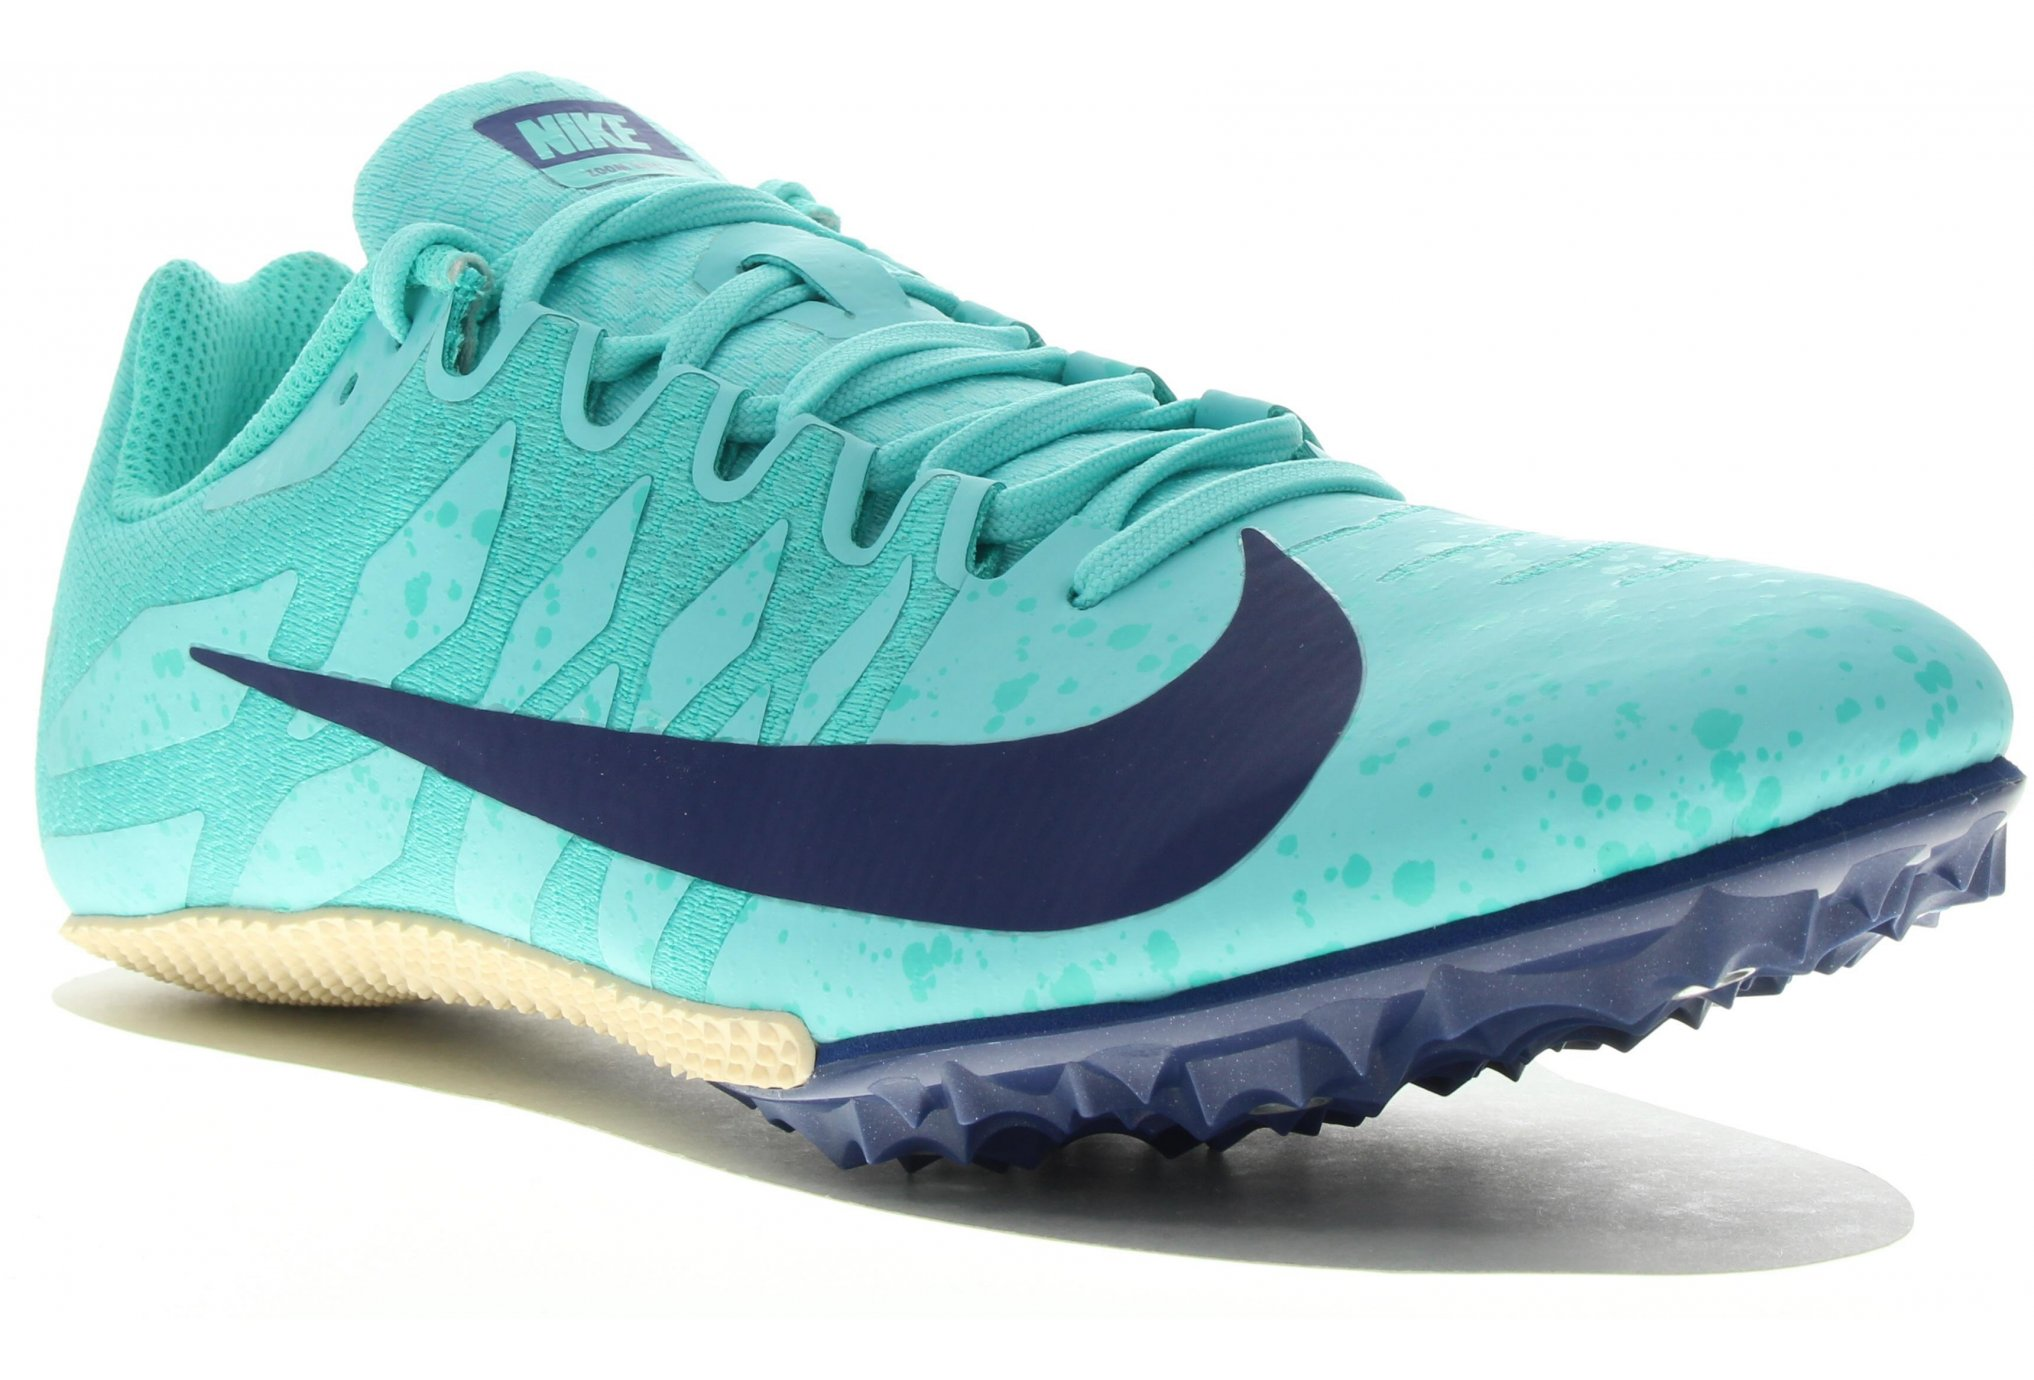 detailed look 6de18 a2f01 Nike Zoom Rival S 9 W Chaussures running femme